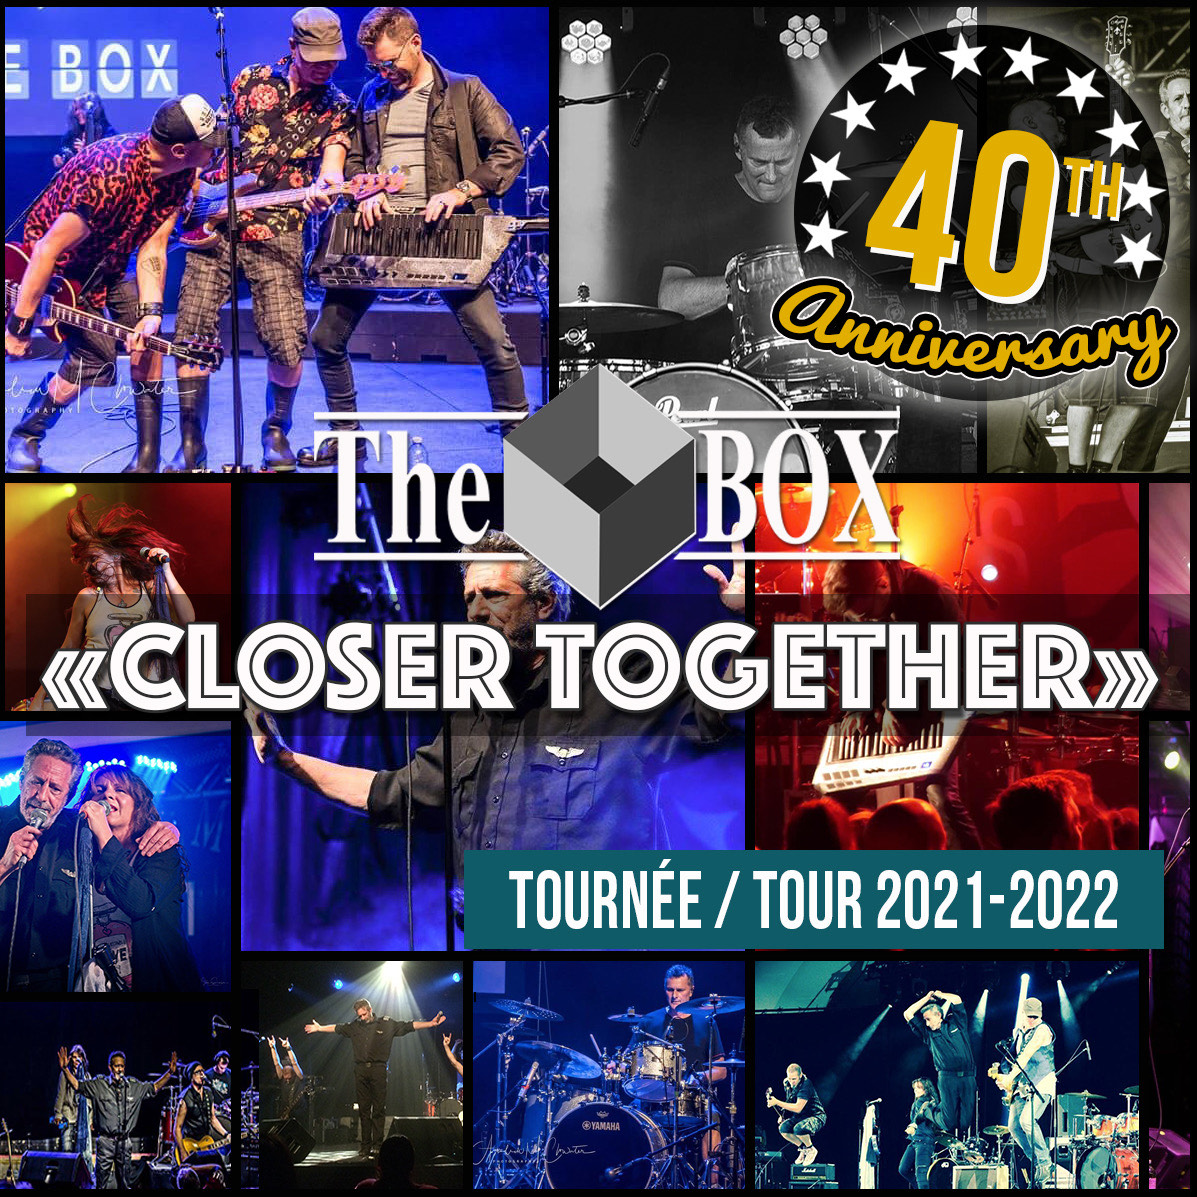 Purchase Tickets below for The Box 40th Anniversary Online Concert - Saturday, March 6th